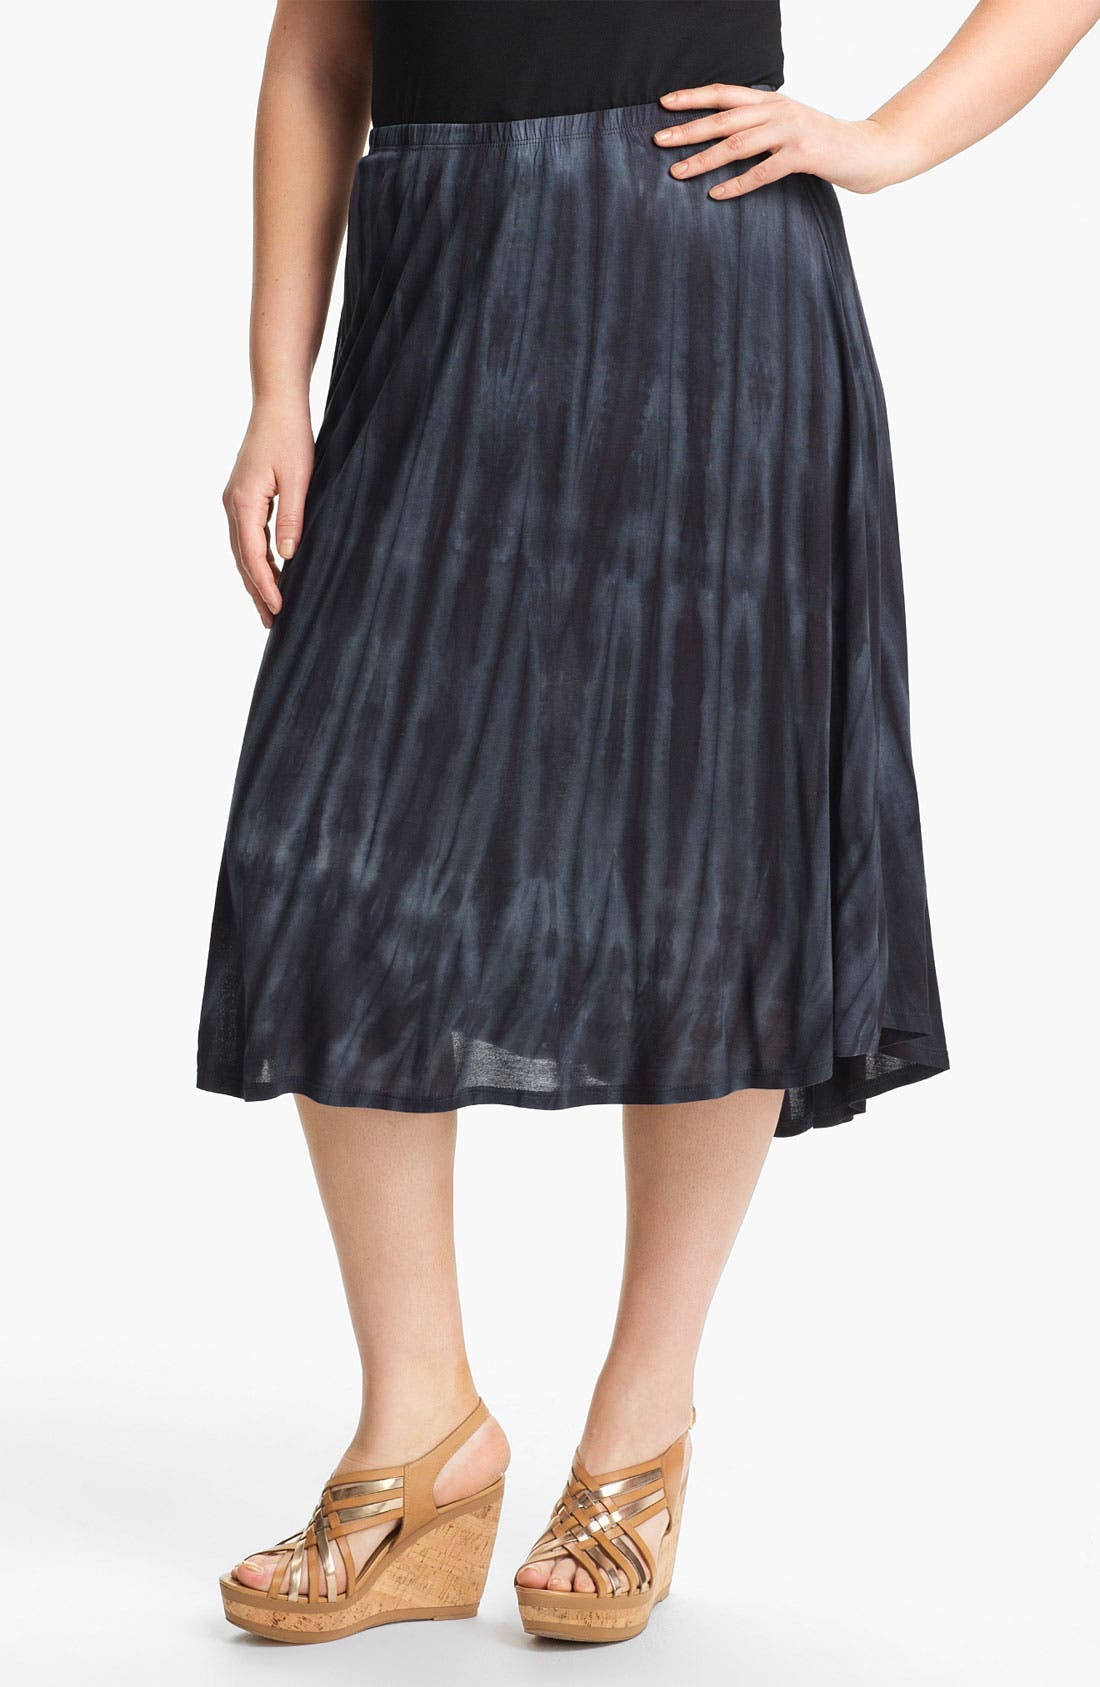 Alternate Image 1 Selected - Chalet 'Tiffany' Flared High/Low Skirt (Plus)